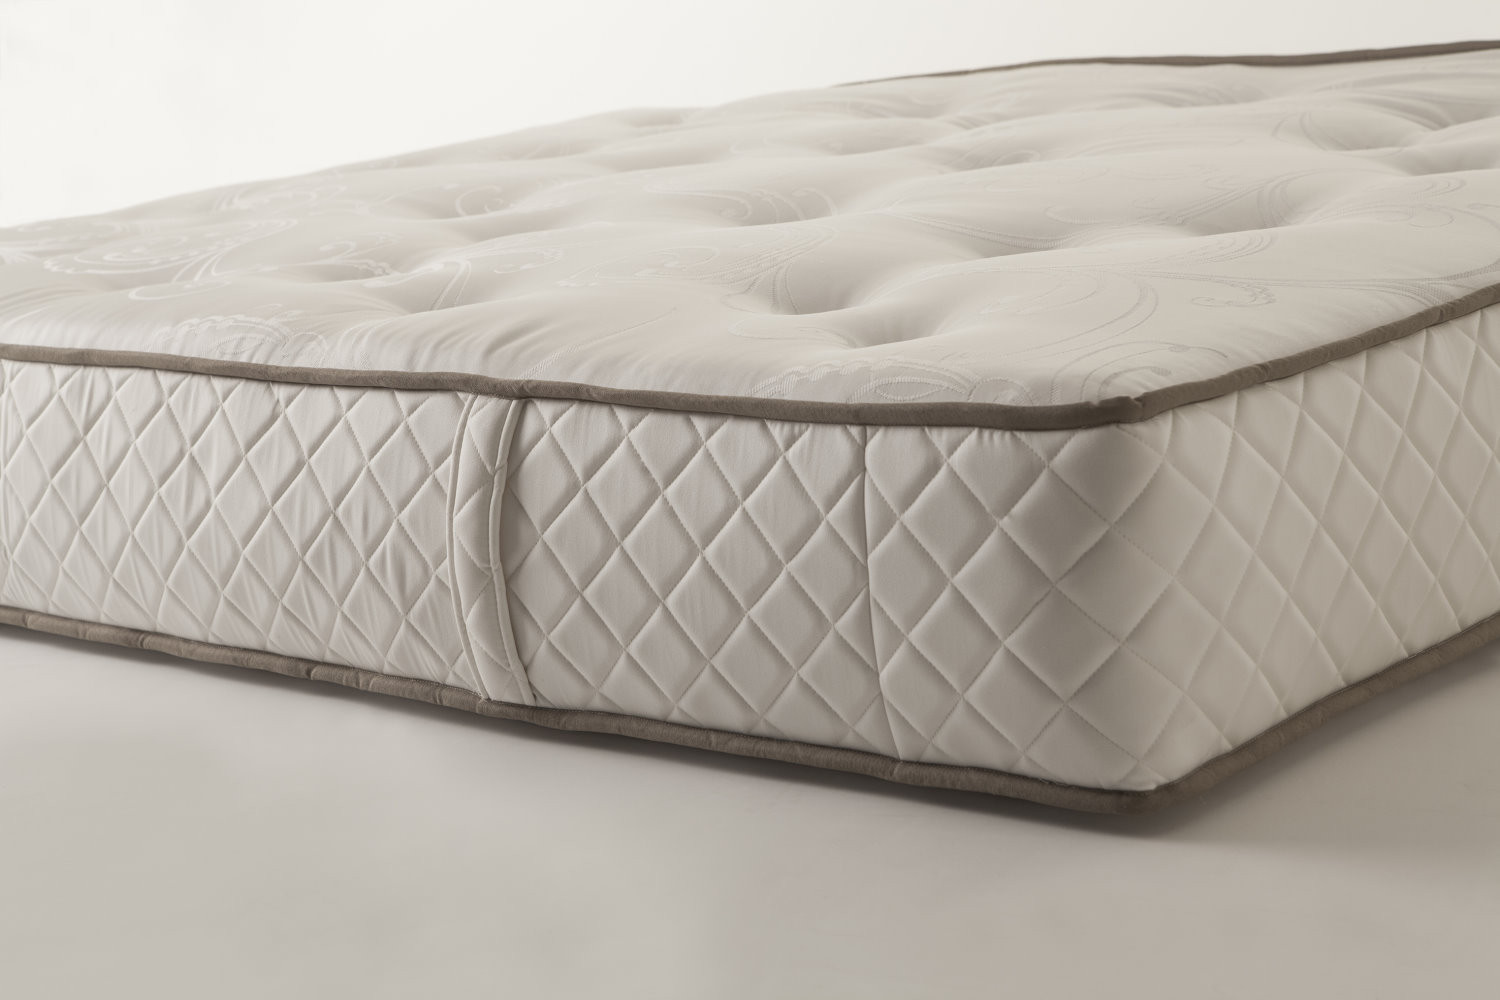 Superb mattress with springs and memory foam padding